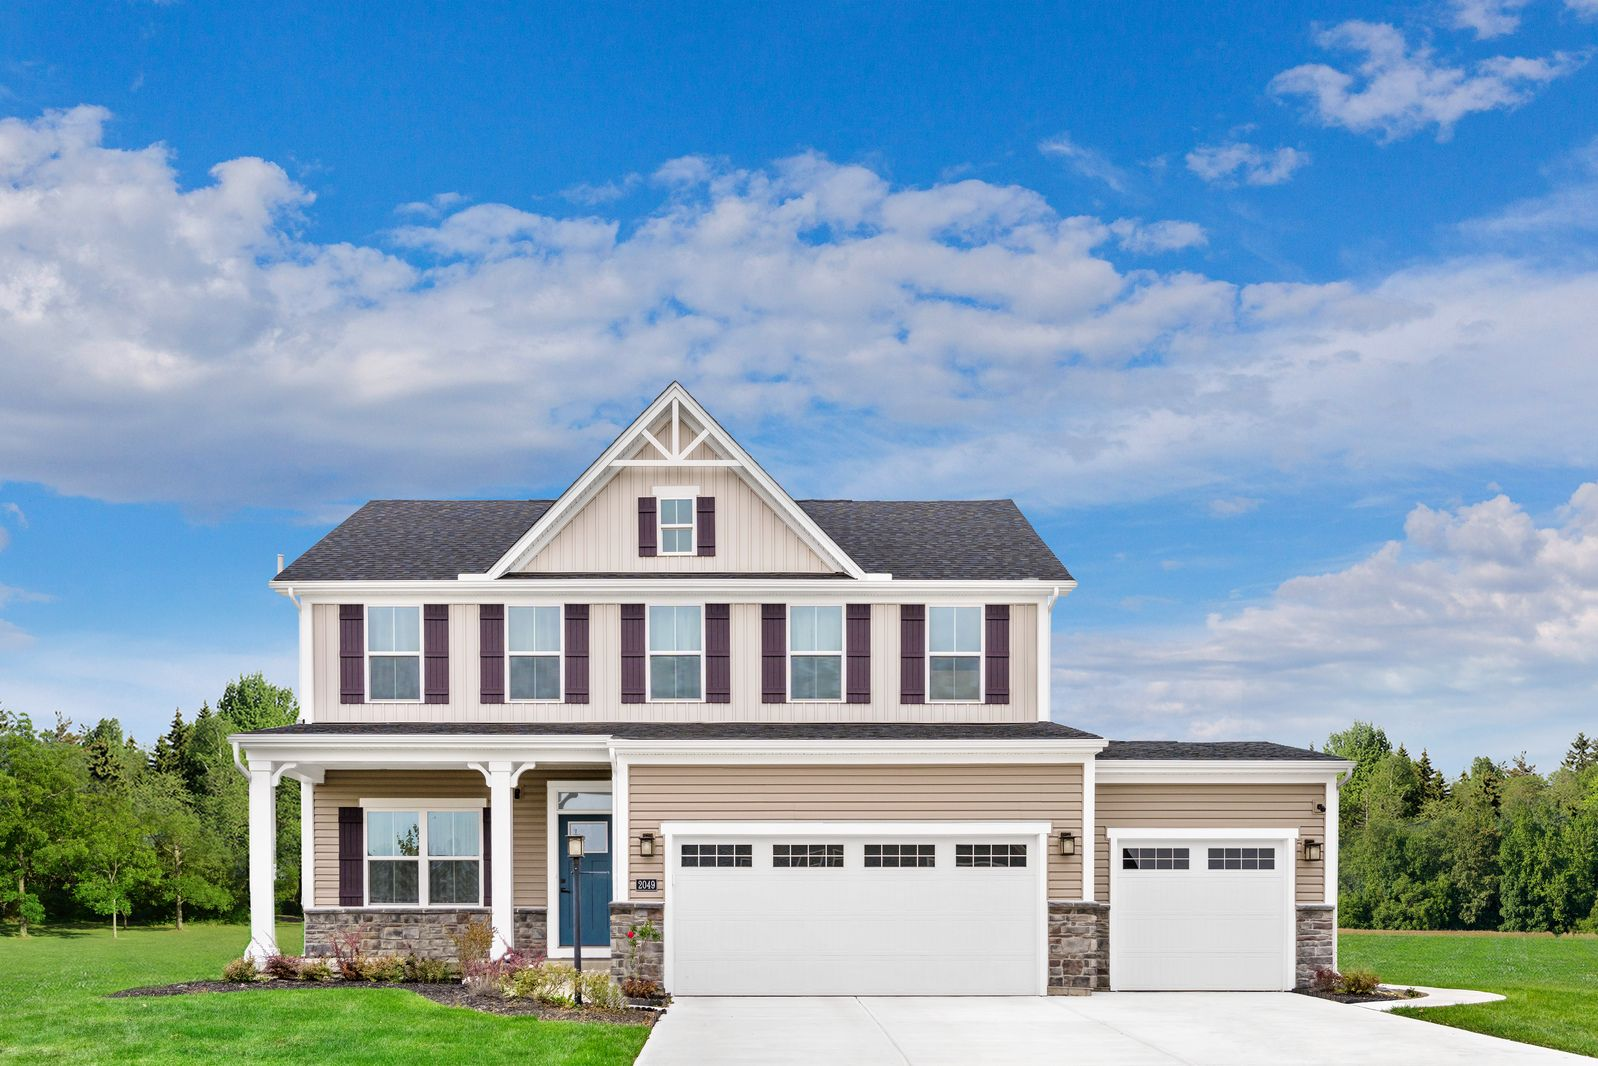 WELCOME HOME TO TIMBER CREEK:2-story & ranch homes in Midview Schools! Tree-lined homesites up to 1/3 acre, with easy access to Rt 82 and I-480, plus low taxes!Click Here to Schedule Your Private or Virtual Visit Today!